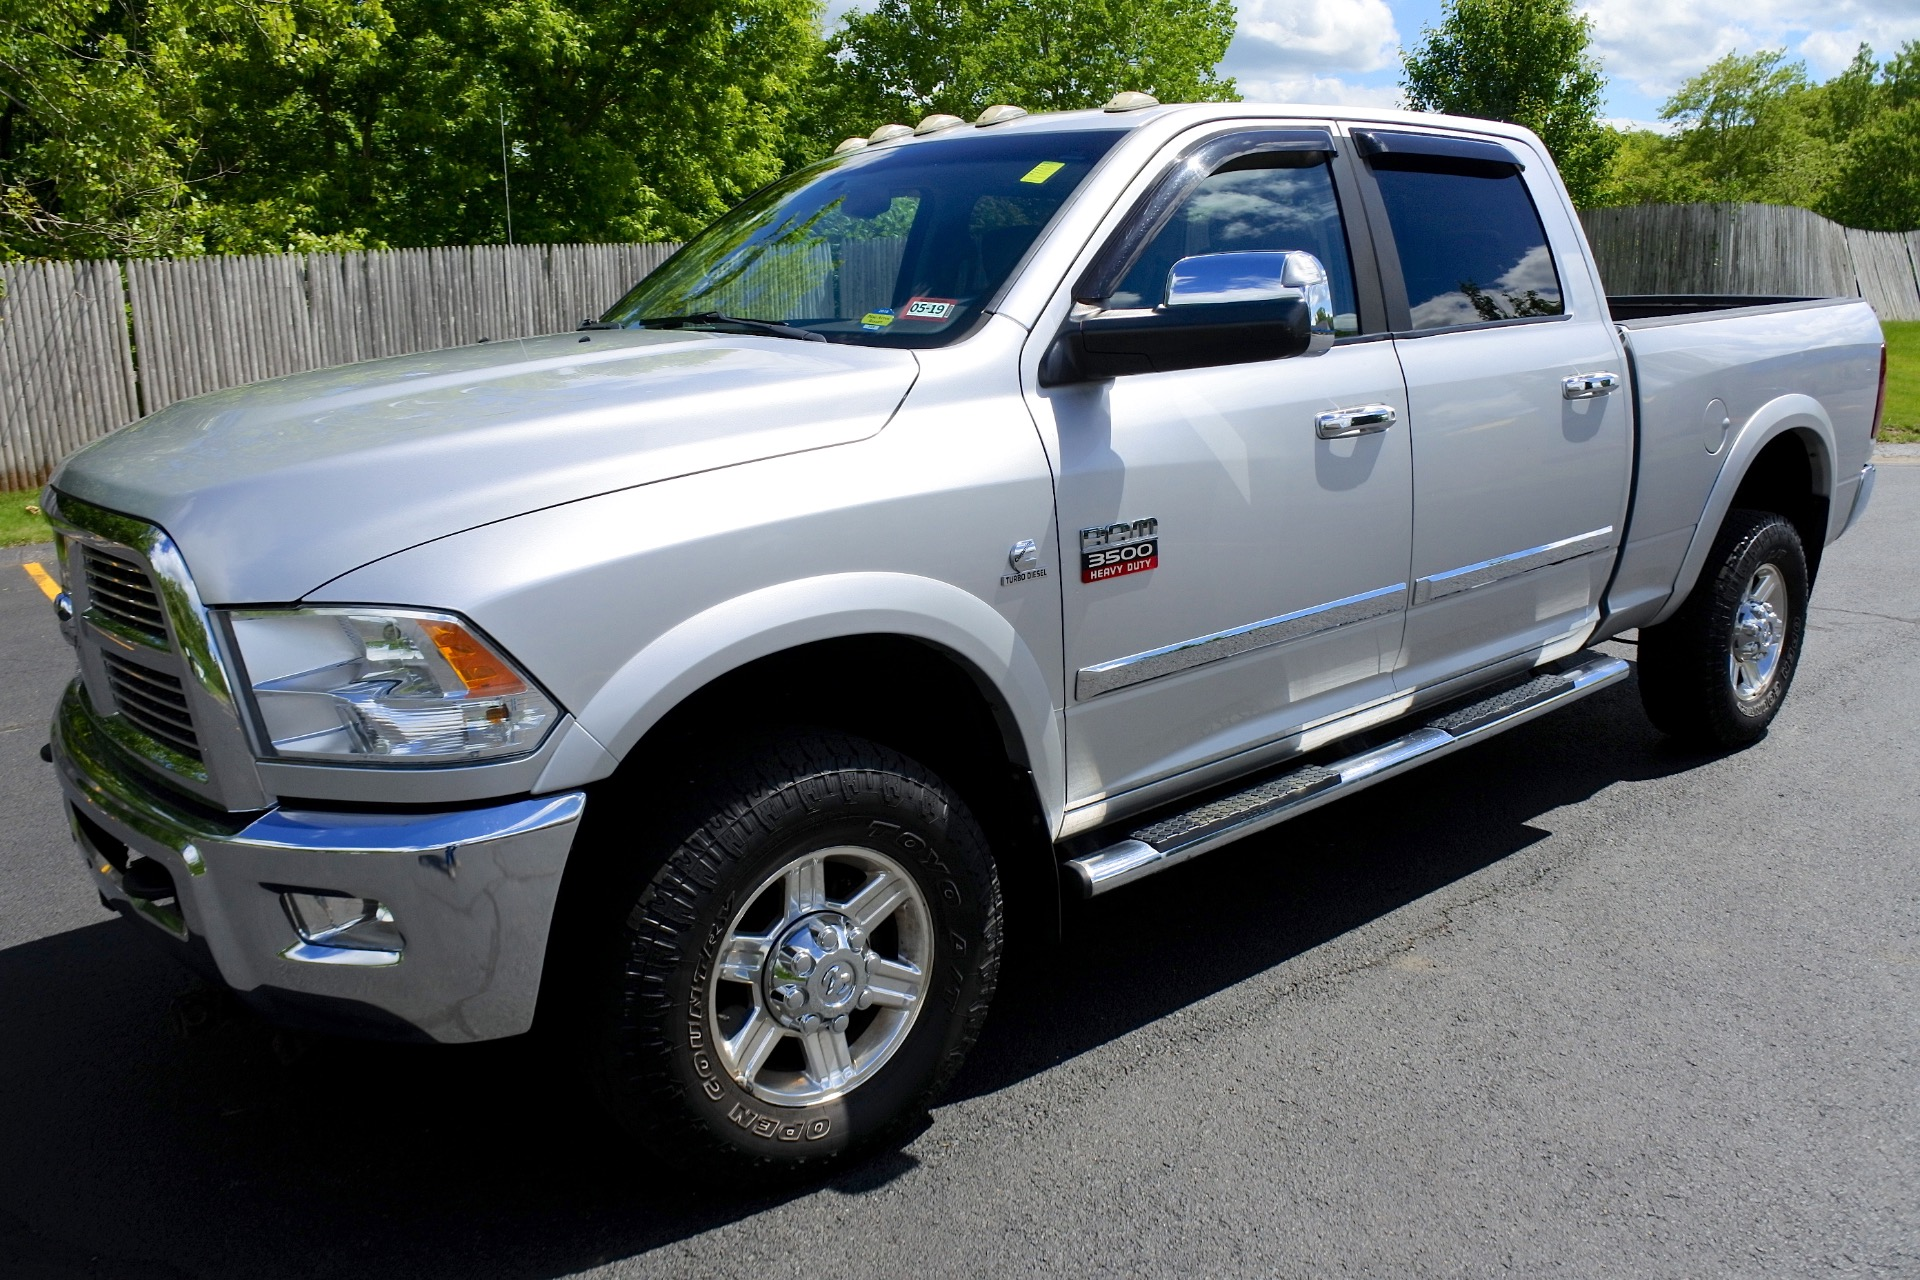 Used 2010 Dodge Ram 3500 4WD Crew Cab 149' Laramie Used 2010 Dodge Ram 3500 4WD Crew Cab 149' Laramie for sale  at Metro West Motorcars LLC in Shrewsbury MA 1